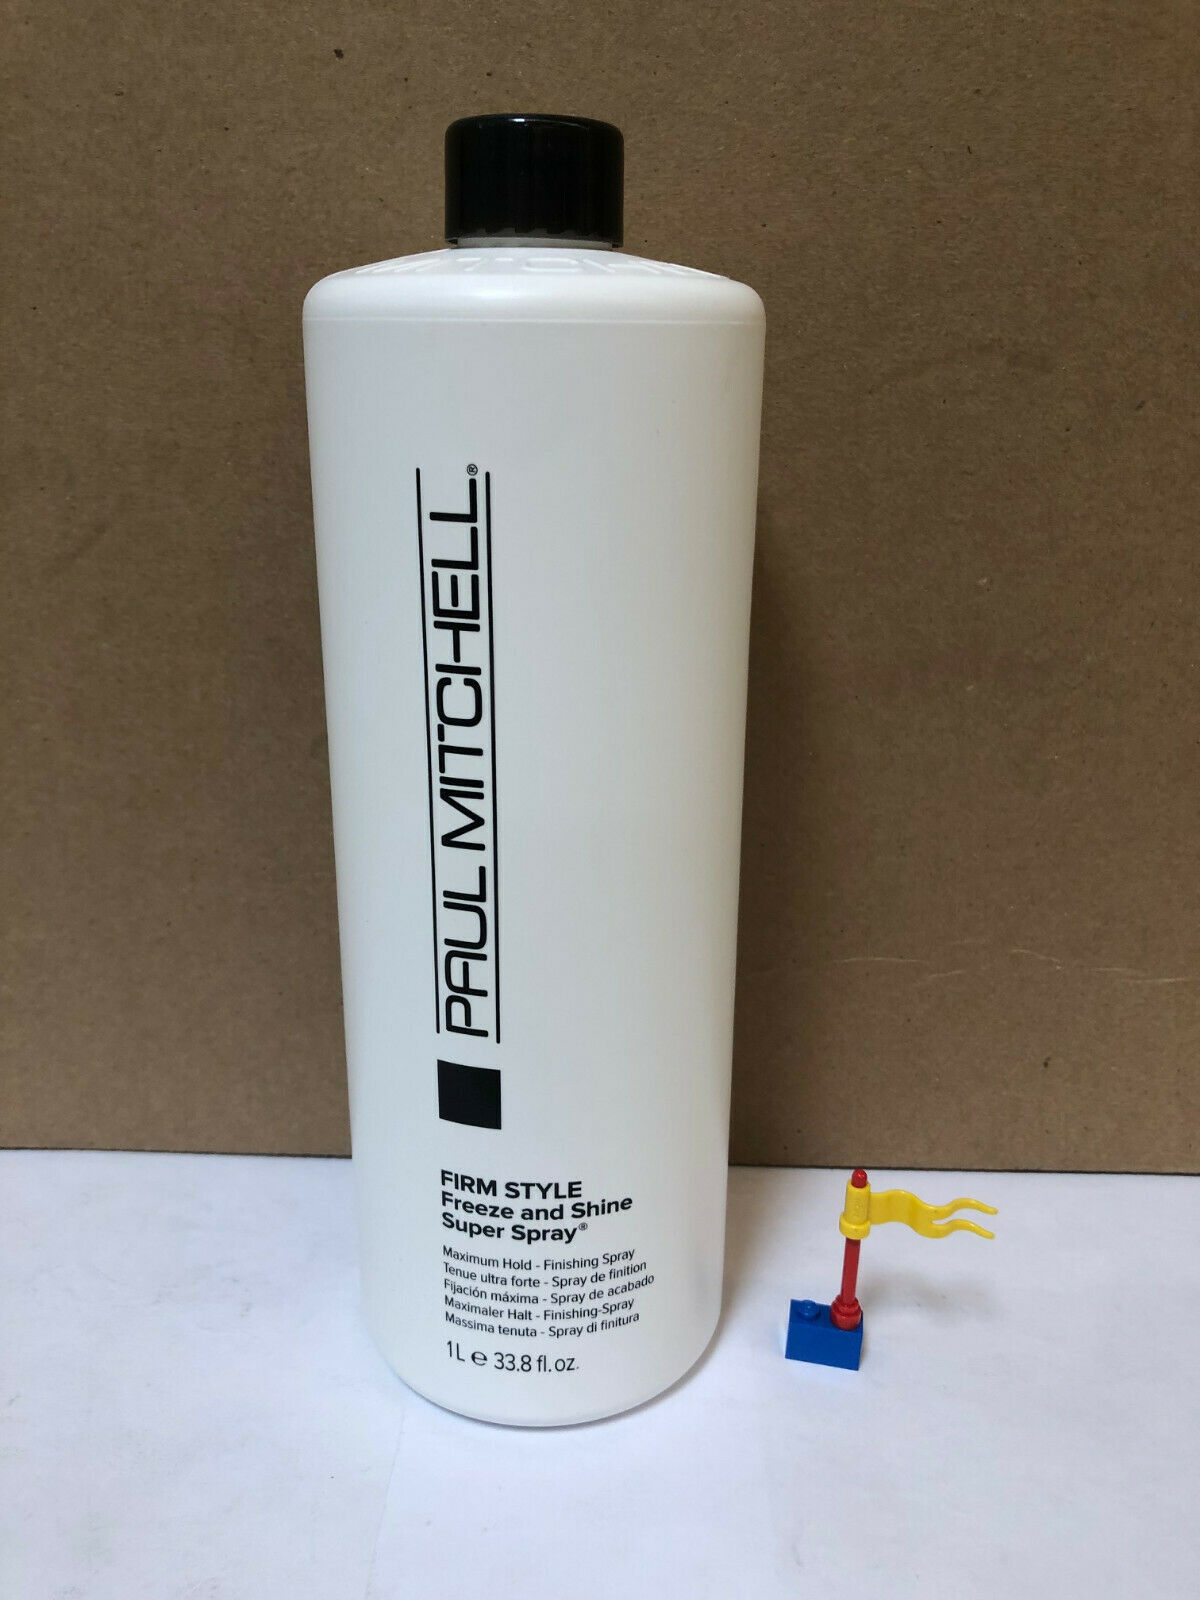 Paul Mitchell Firm Style Freeze and Shine Super Spray Liter